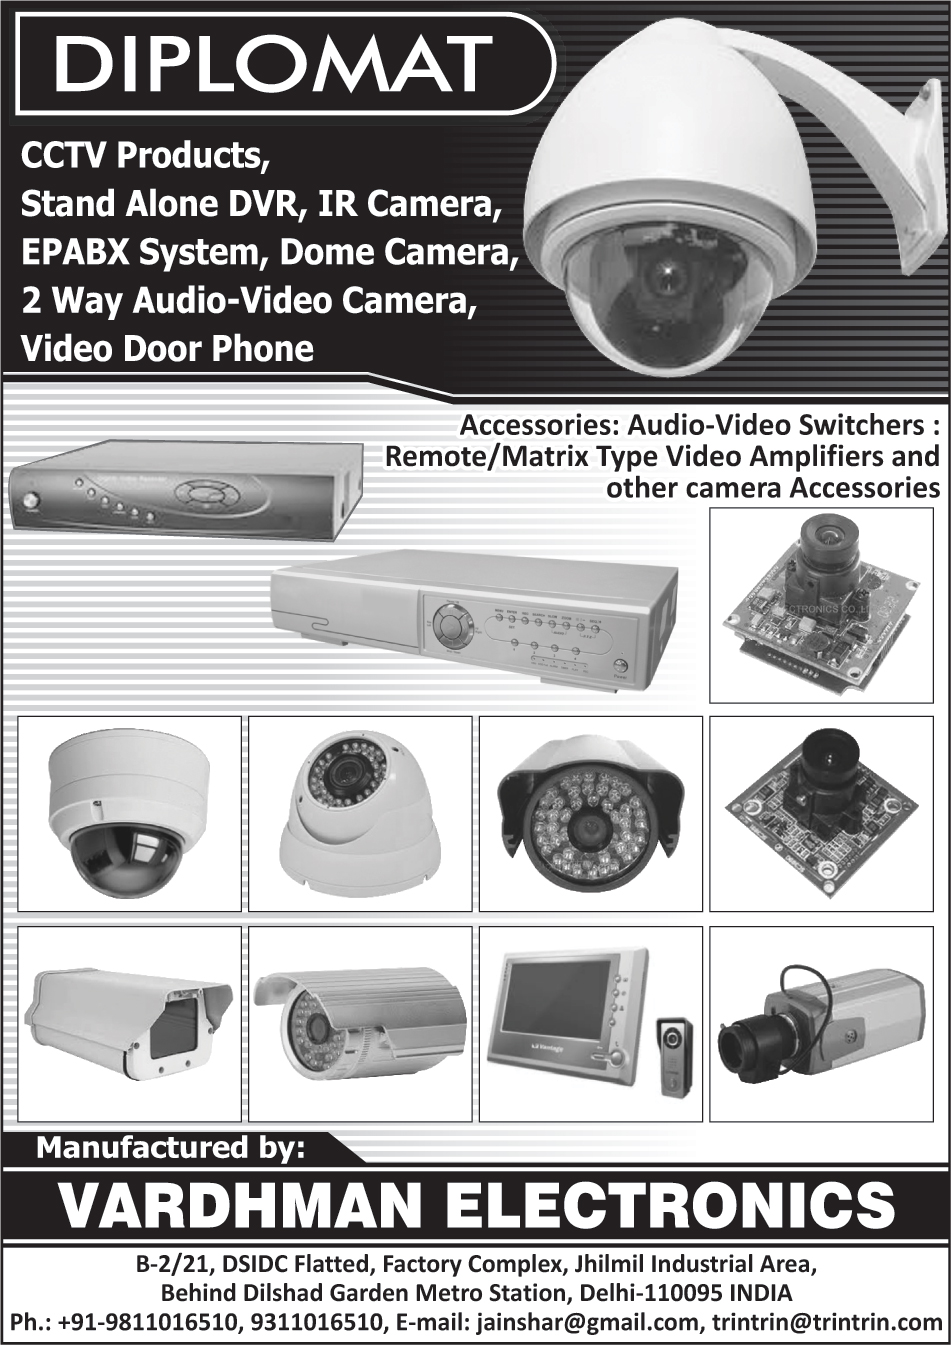 CCTV Products, Stand Alone Dvr, Stand Alone Digital Video Recorders, CCTV Cameras, IR Cameras, EPABX Systems, Dome Cameras, Two Way Audio Video Cameras, Video Door Phones, Camera Accessories, Audio Video Switchers, Remote Type Video Amplifiers, Matrix Type Video Amplifiers